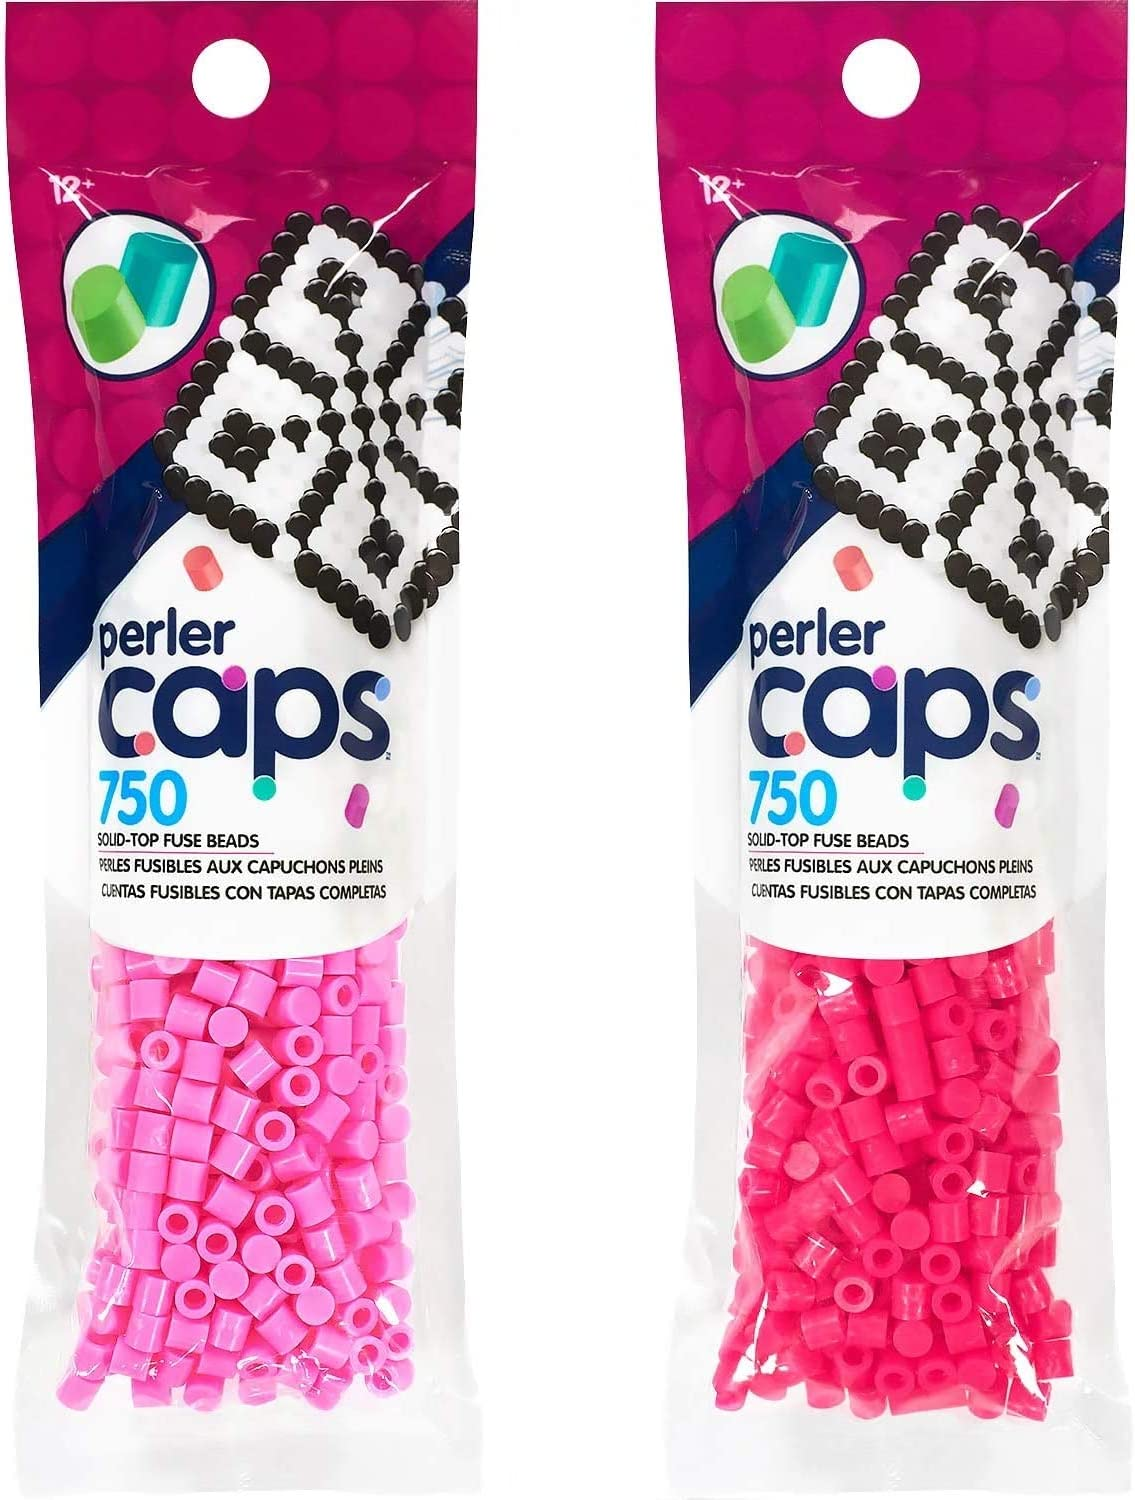 2 Pack Bundle Solid-Top Fuse Beads Perler Caps Blueberry Creme and Cobalt